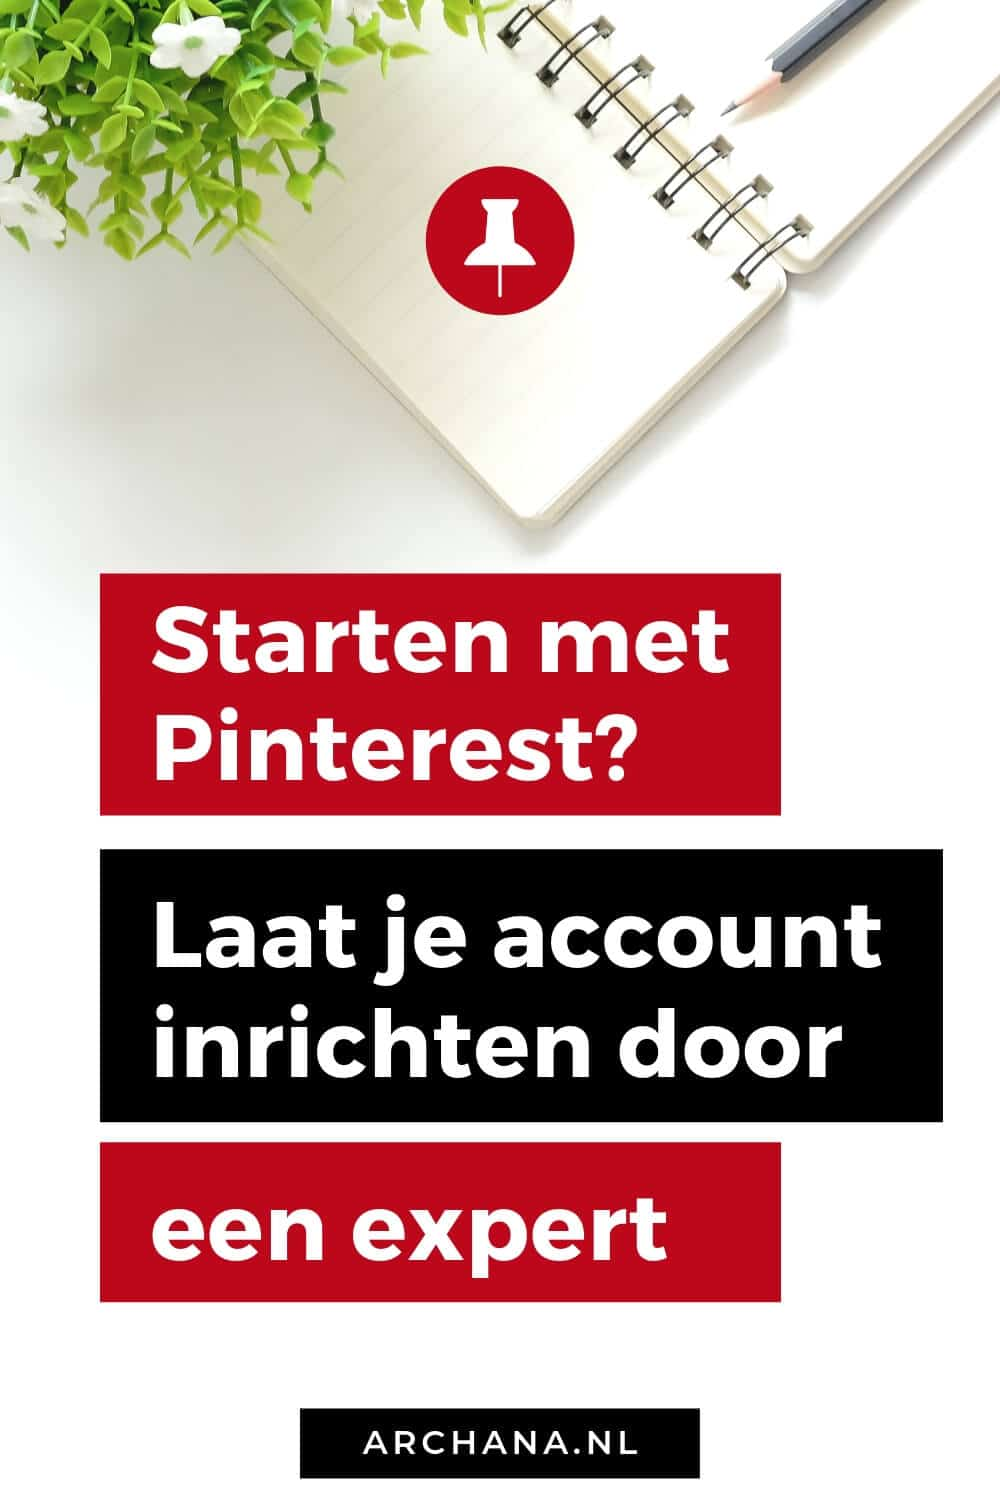 Starten met Pinterest? Laat je account inrichten door Pinterest Expert Archana Haarnack - ARCHANA.NL #pinterestmarketing #pinterest